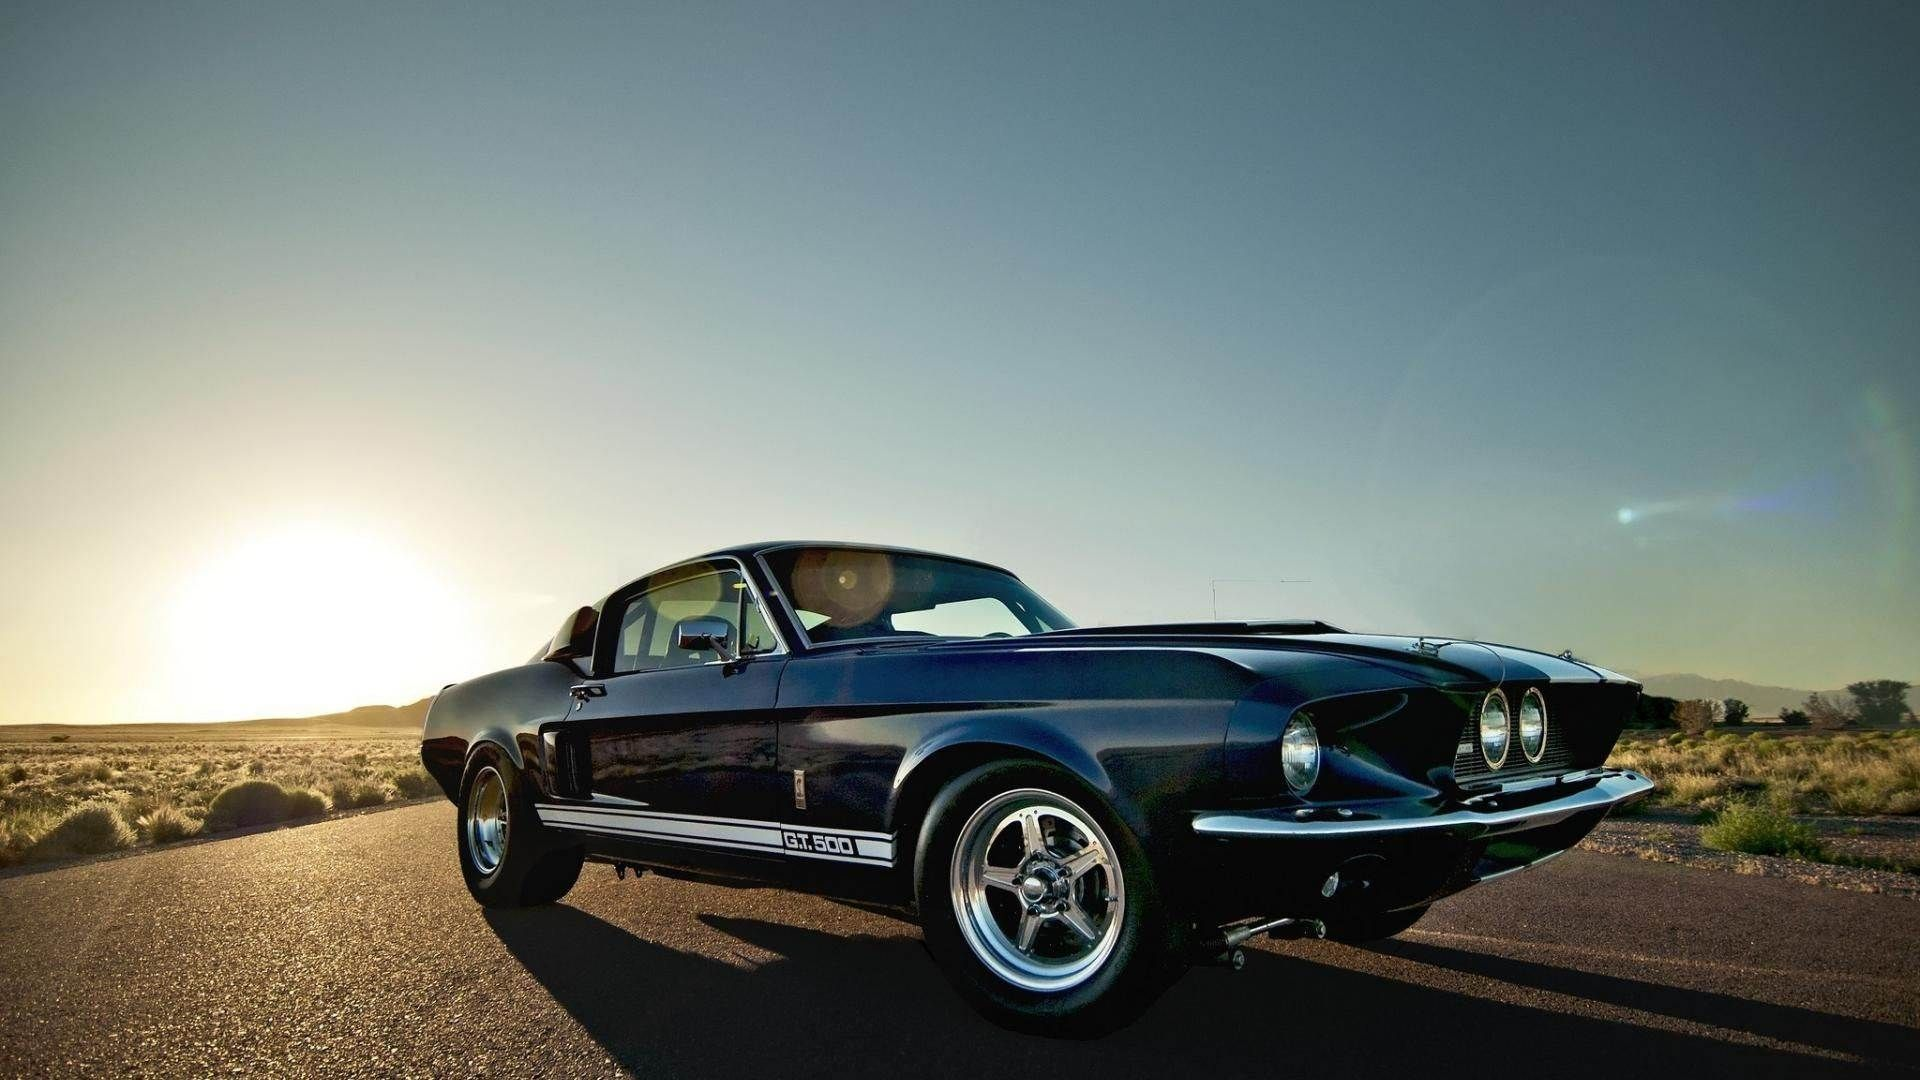 Nature Images Free Download Collection 1920 1080 Free Downloadable Wallpapers For Laptop Adorable Wallpap Mustang Gt500 1967 Mustang Gt500 Mustang Wallpaper